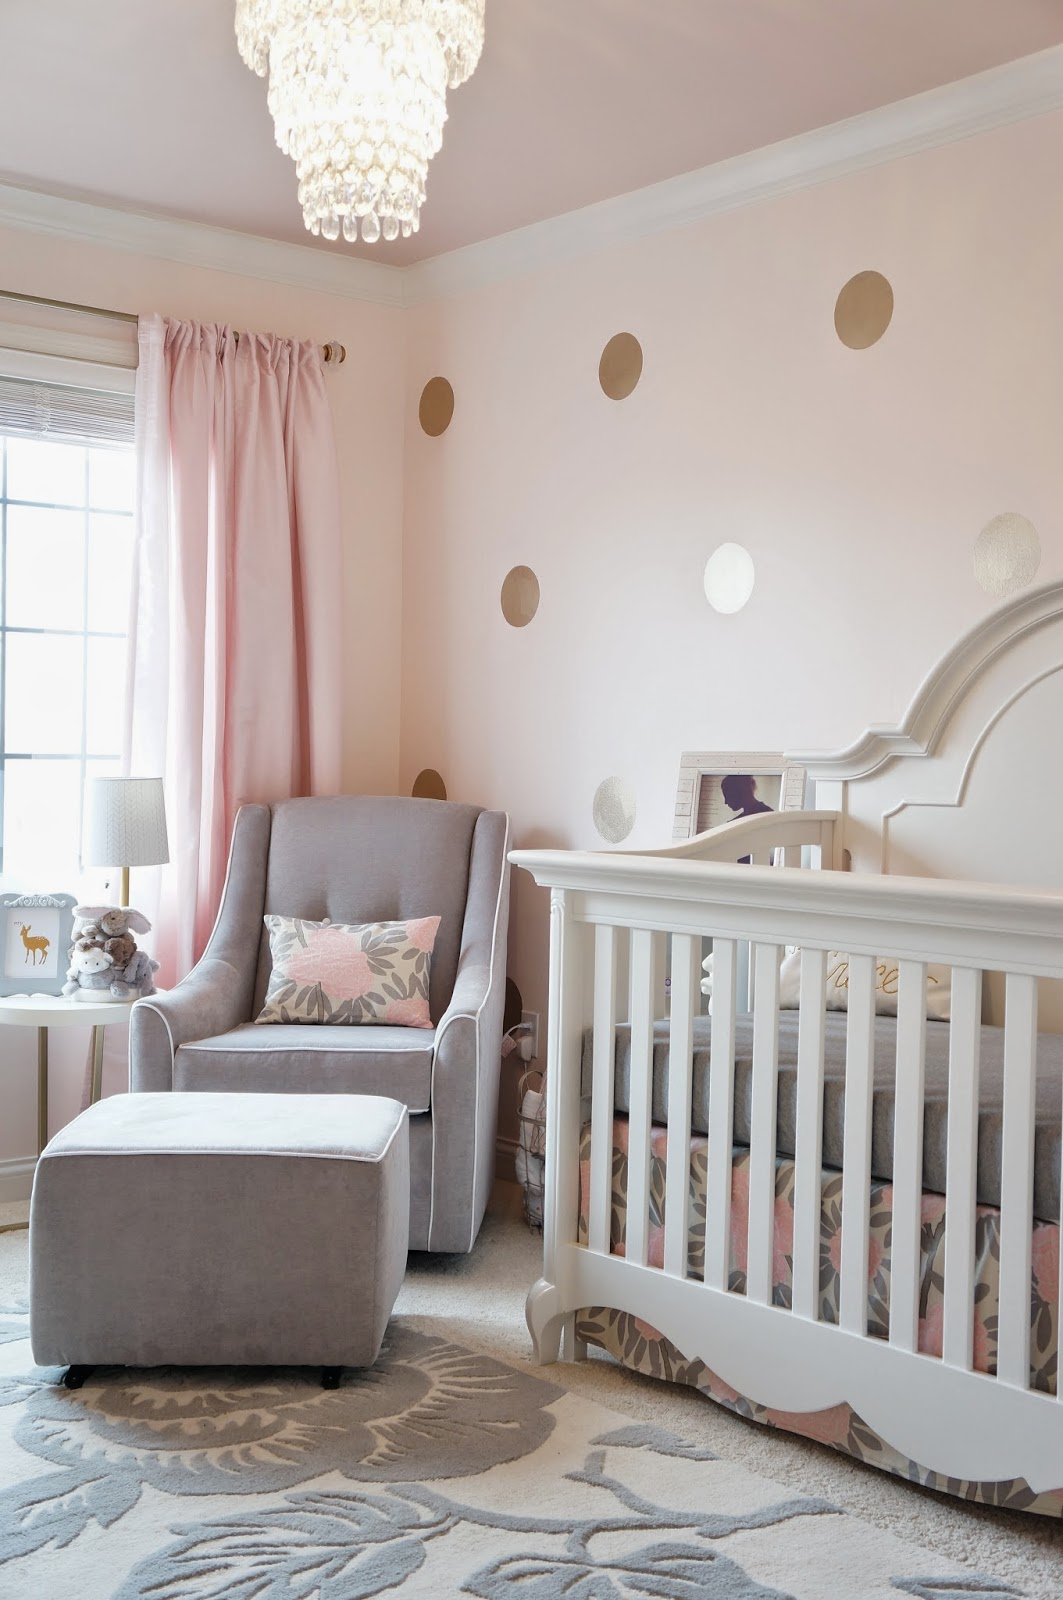 It 39 s a pretty prins life nursery reveal - Objet deco chambre bebe ...